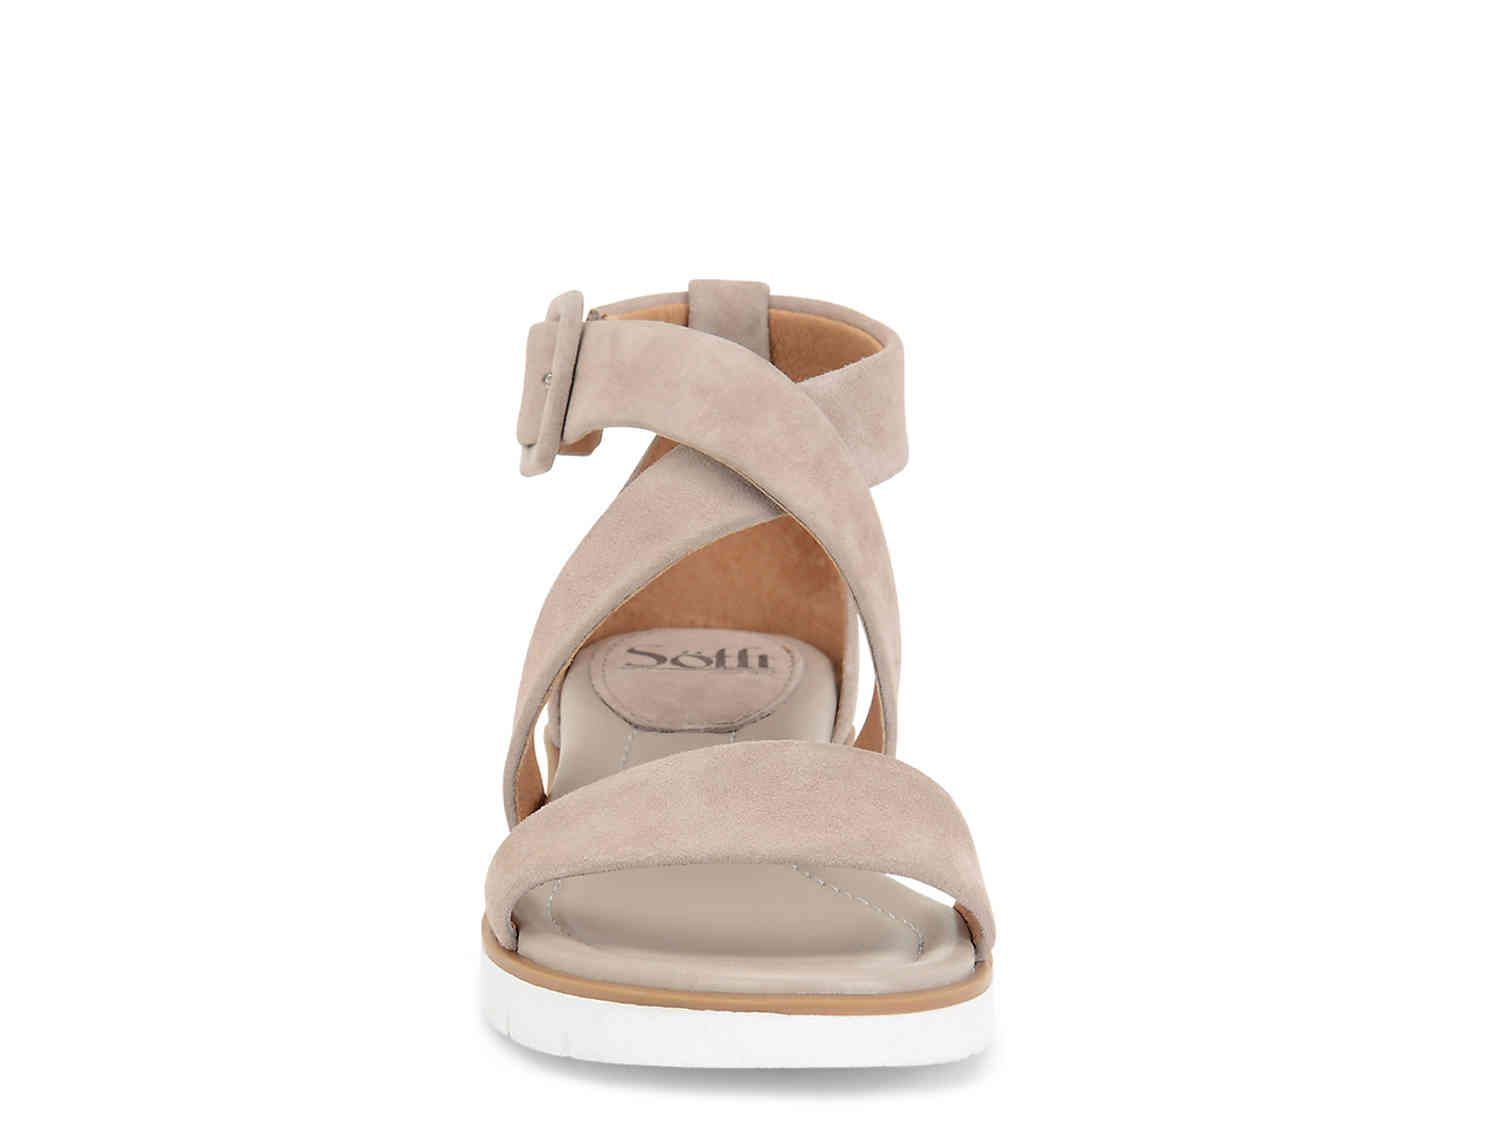 4969bd1acdc6 Sofft Mira Flat Sandal Women s Shoes